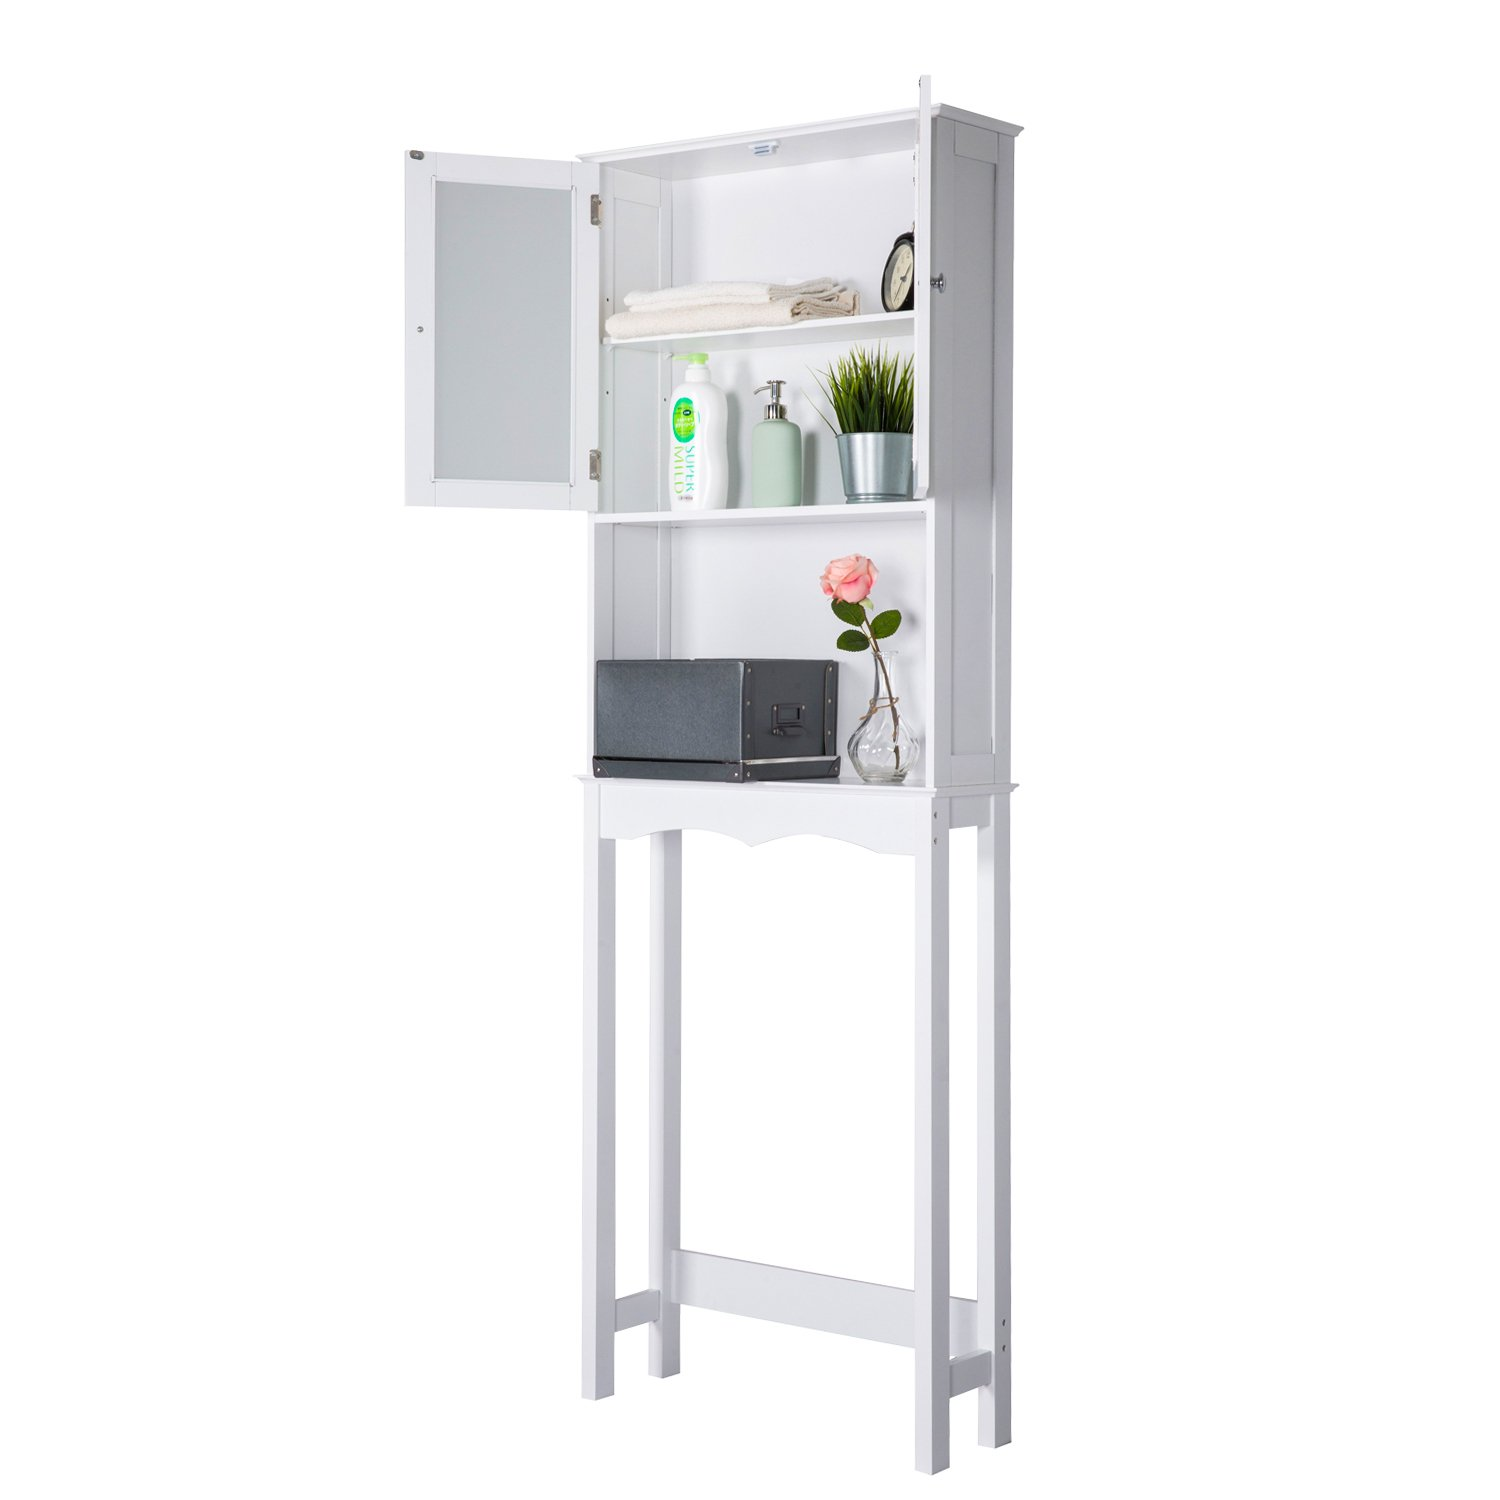 Peachtree Press Inc Home Bathroom Shelf Over The Toilet, Space Saver Cabinet,Bathroom Cabinet Organizer with Moru Tempered Glass Door, White by Peachtree Press Inc (Image #5)